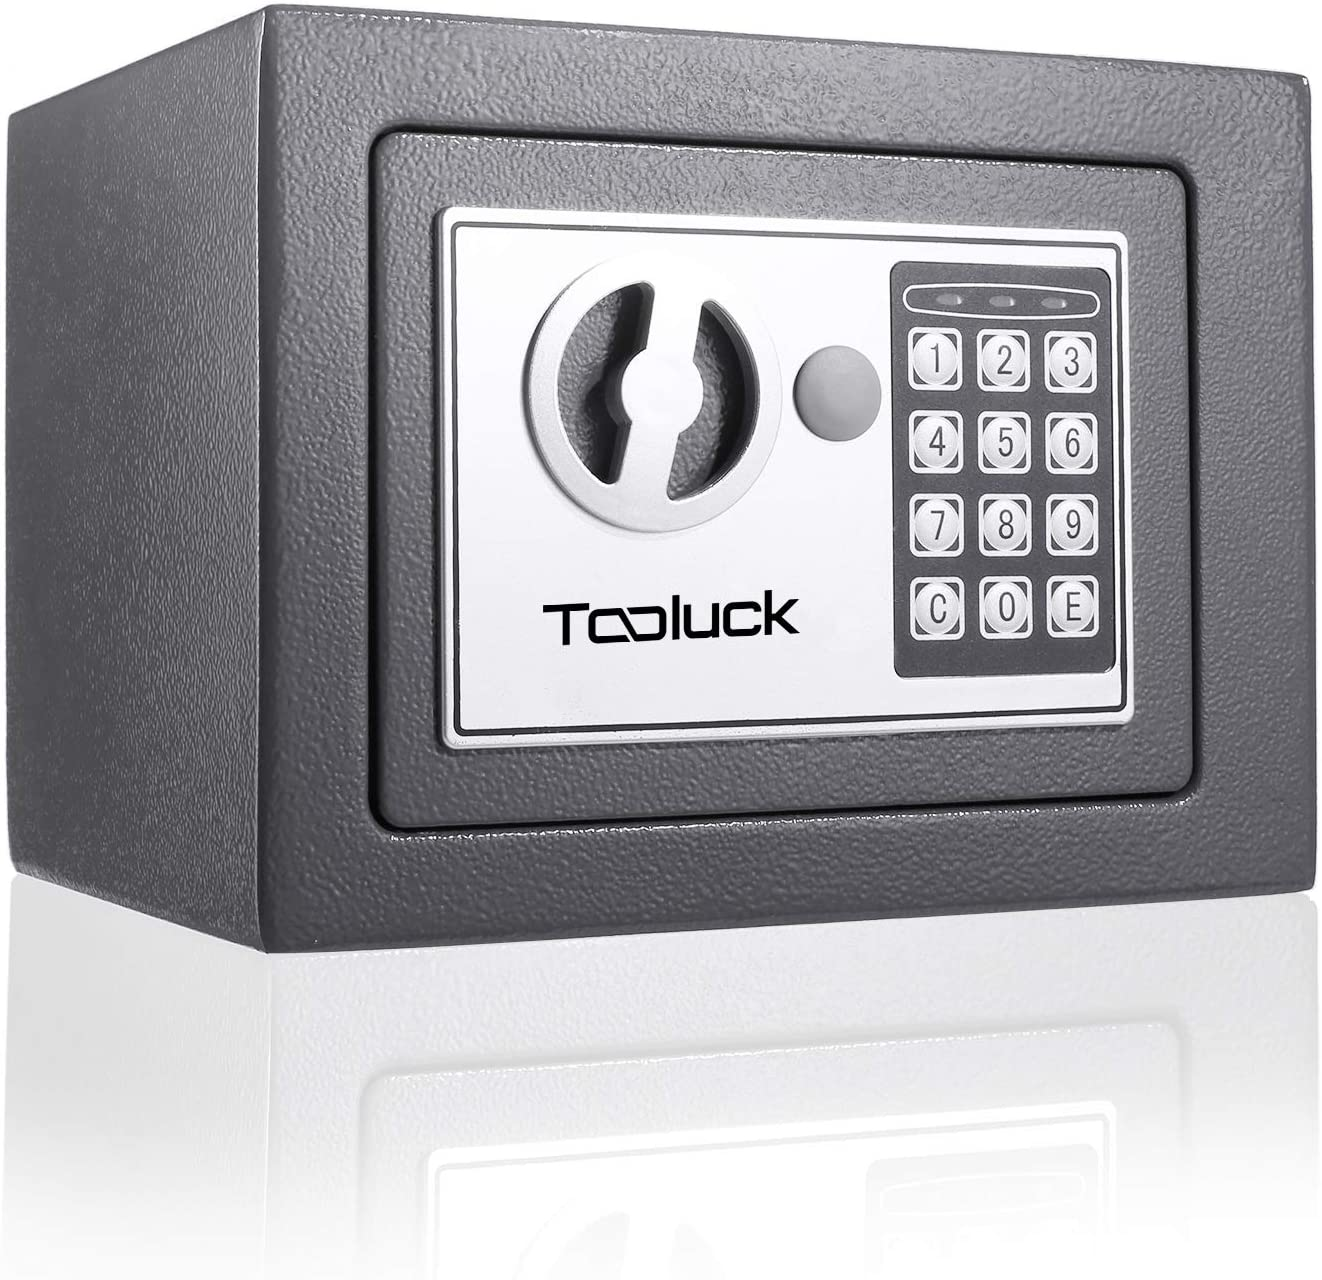 TOOLUCK Safe Box, Digital Security Safe, Fireproof Keypad Safe Lock Box with Keys, Money Box and Deposit Box for Cash Gun Jewelry Home Office Hotel Storage